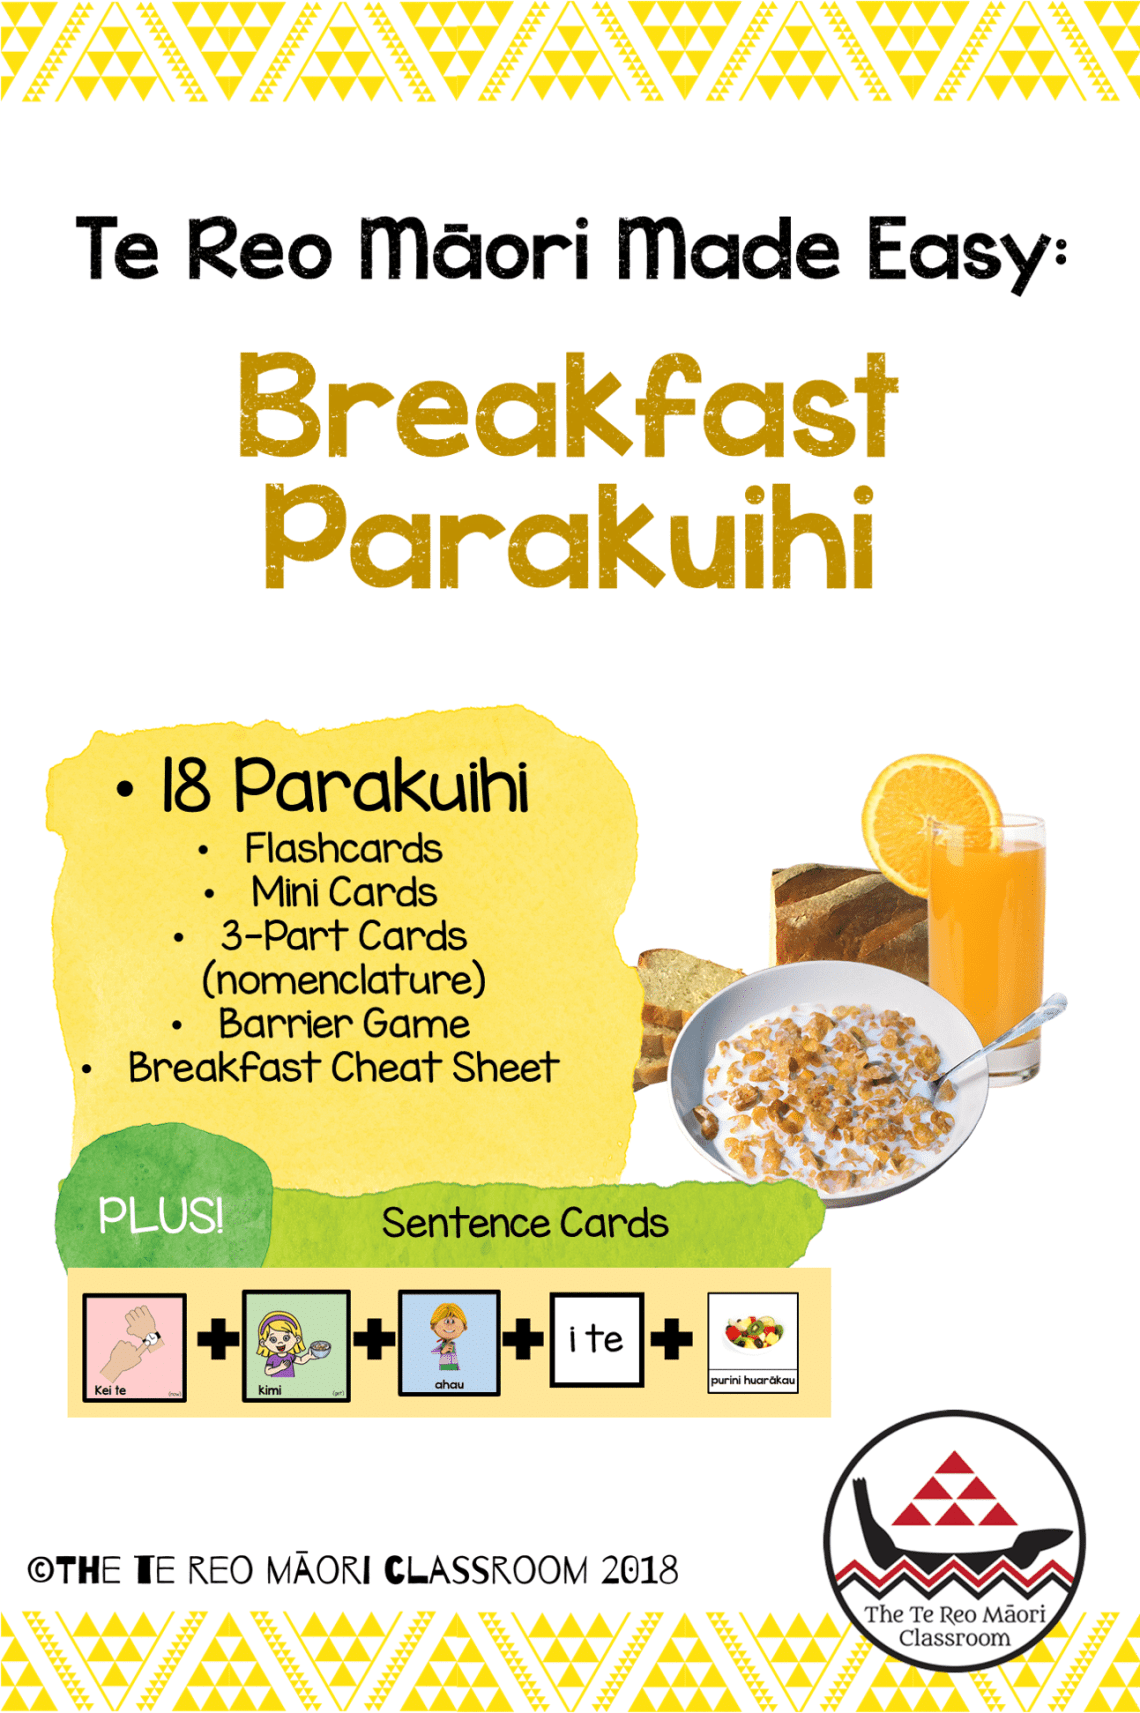 Learn some te reo parakuihi (breakfast) words at home or at school. Heaps of activities to extend your reo. PLUS sentence cards to help with sentence structure and conversation.